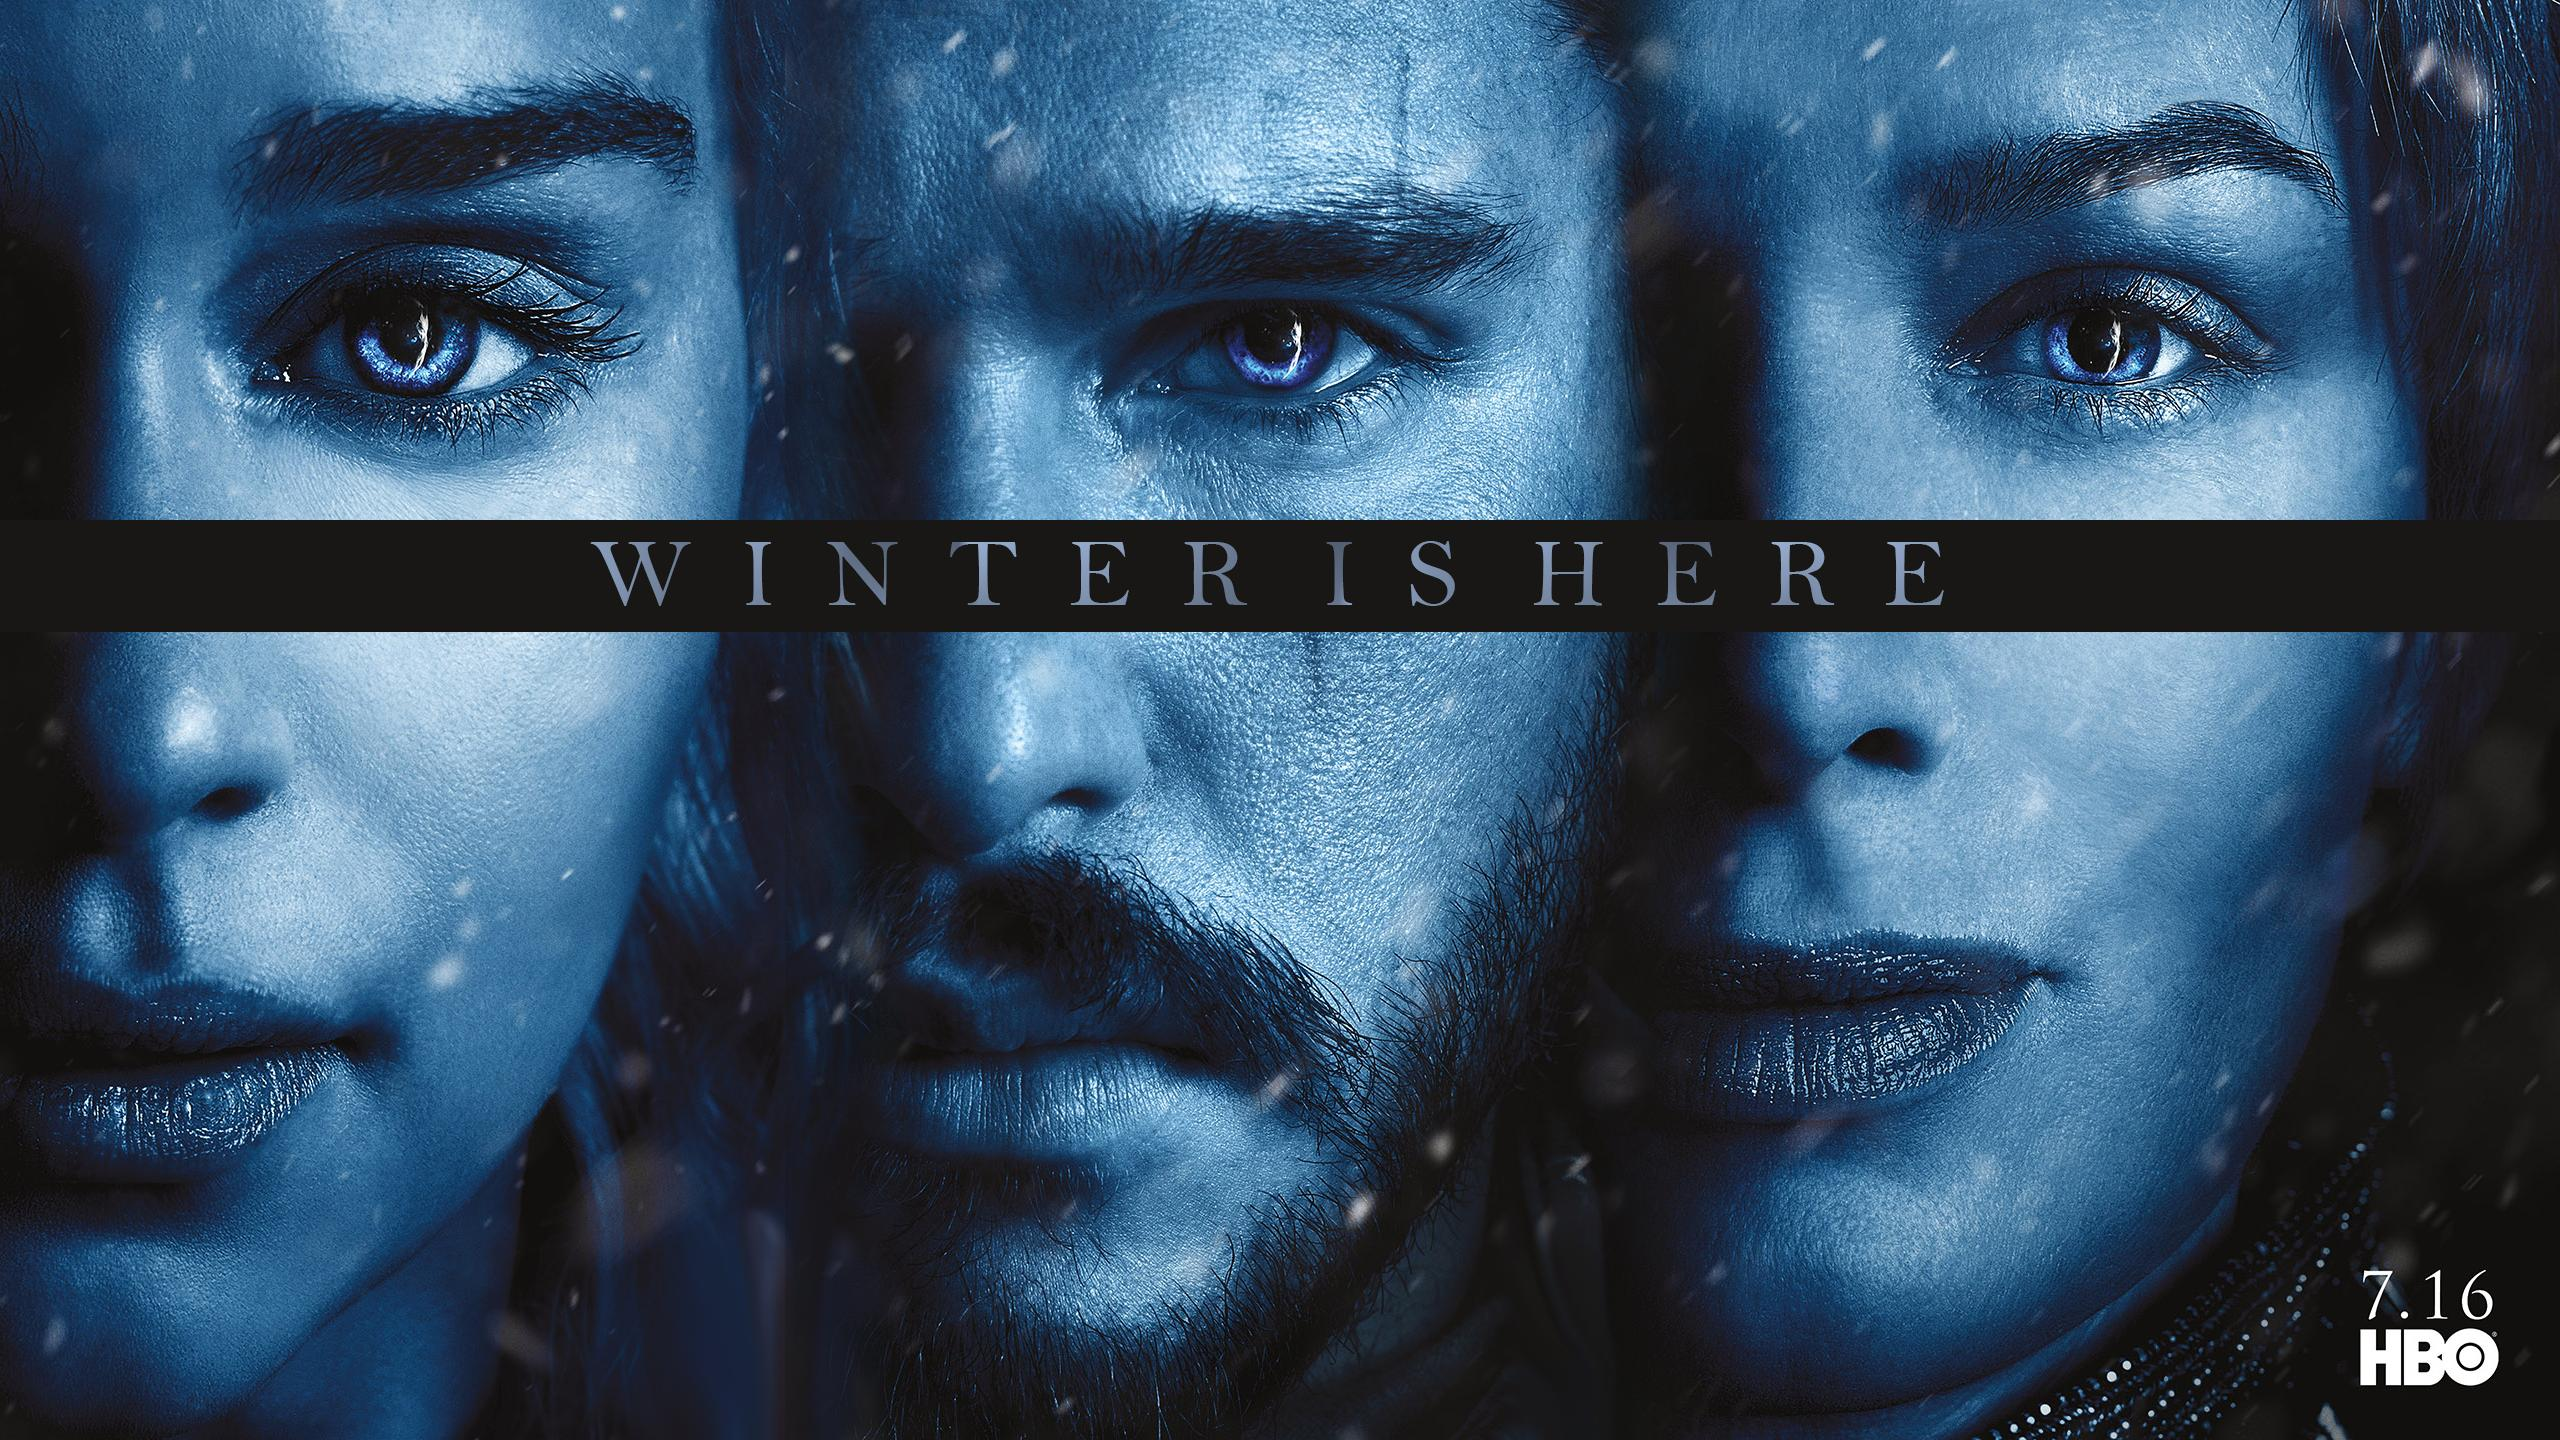 15 Game Of Thrones Season 7 Wallpapers On Wallpapersafari